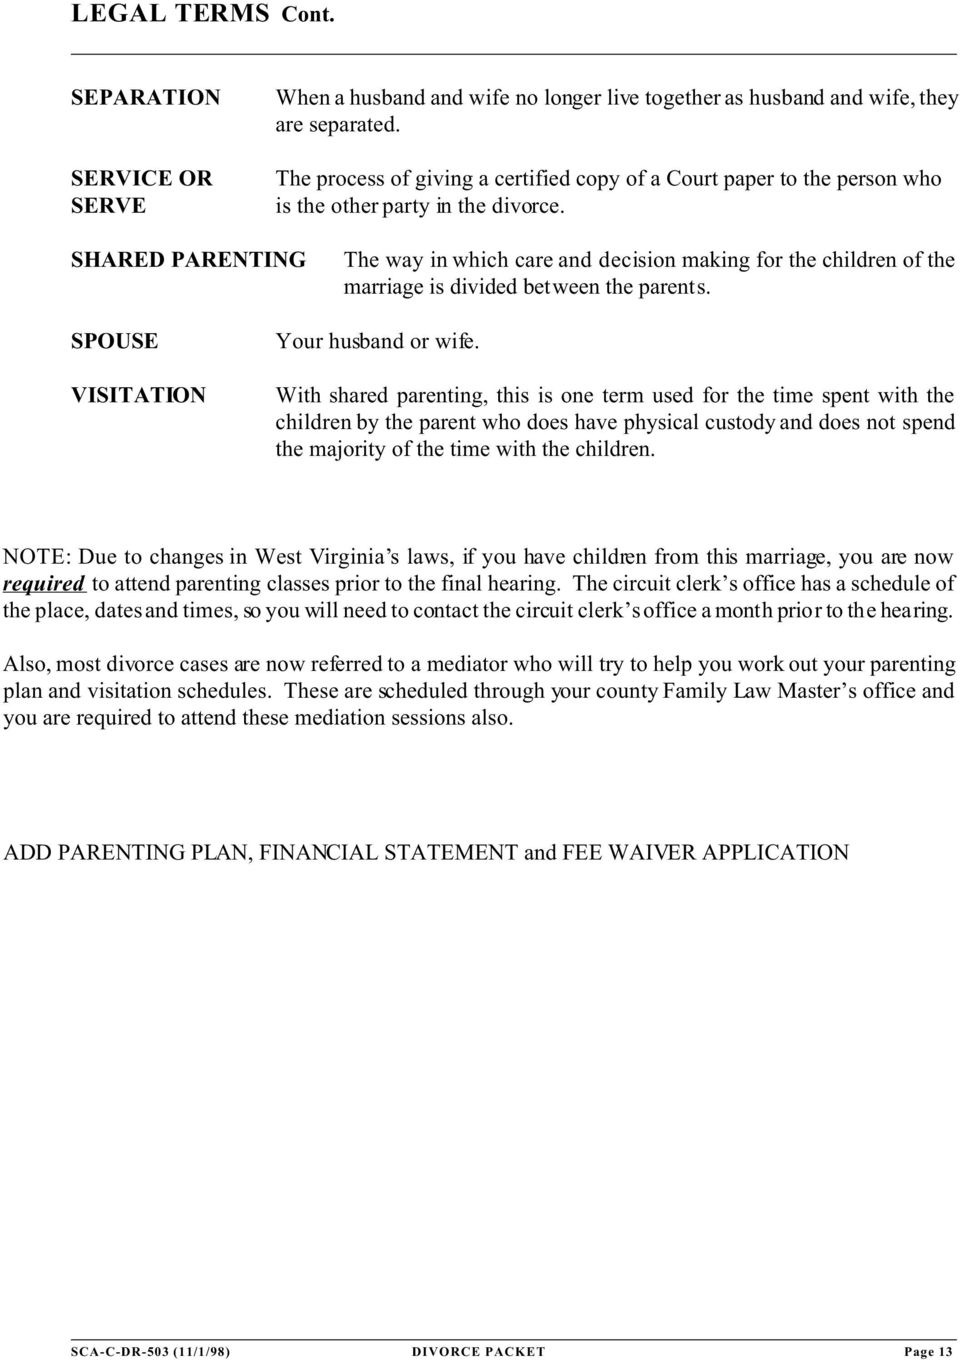 SHARED PARENTING The way in which care and decision making for the children of the marriage is divided between the parents. SPOUSE VISITATION Your husband or wife.